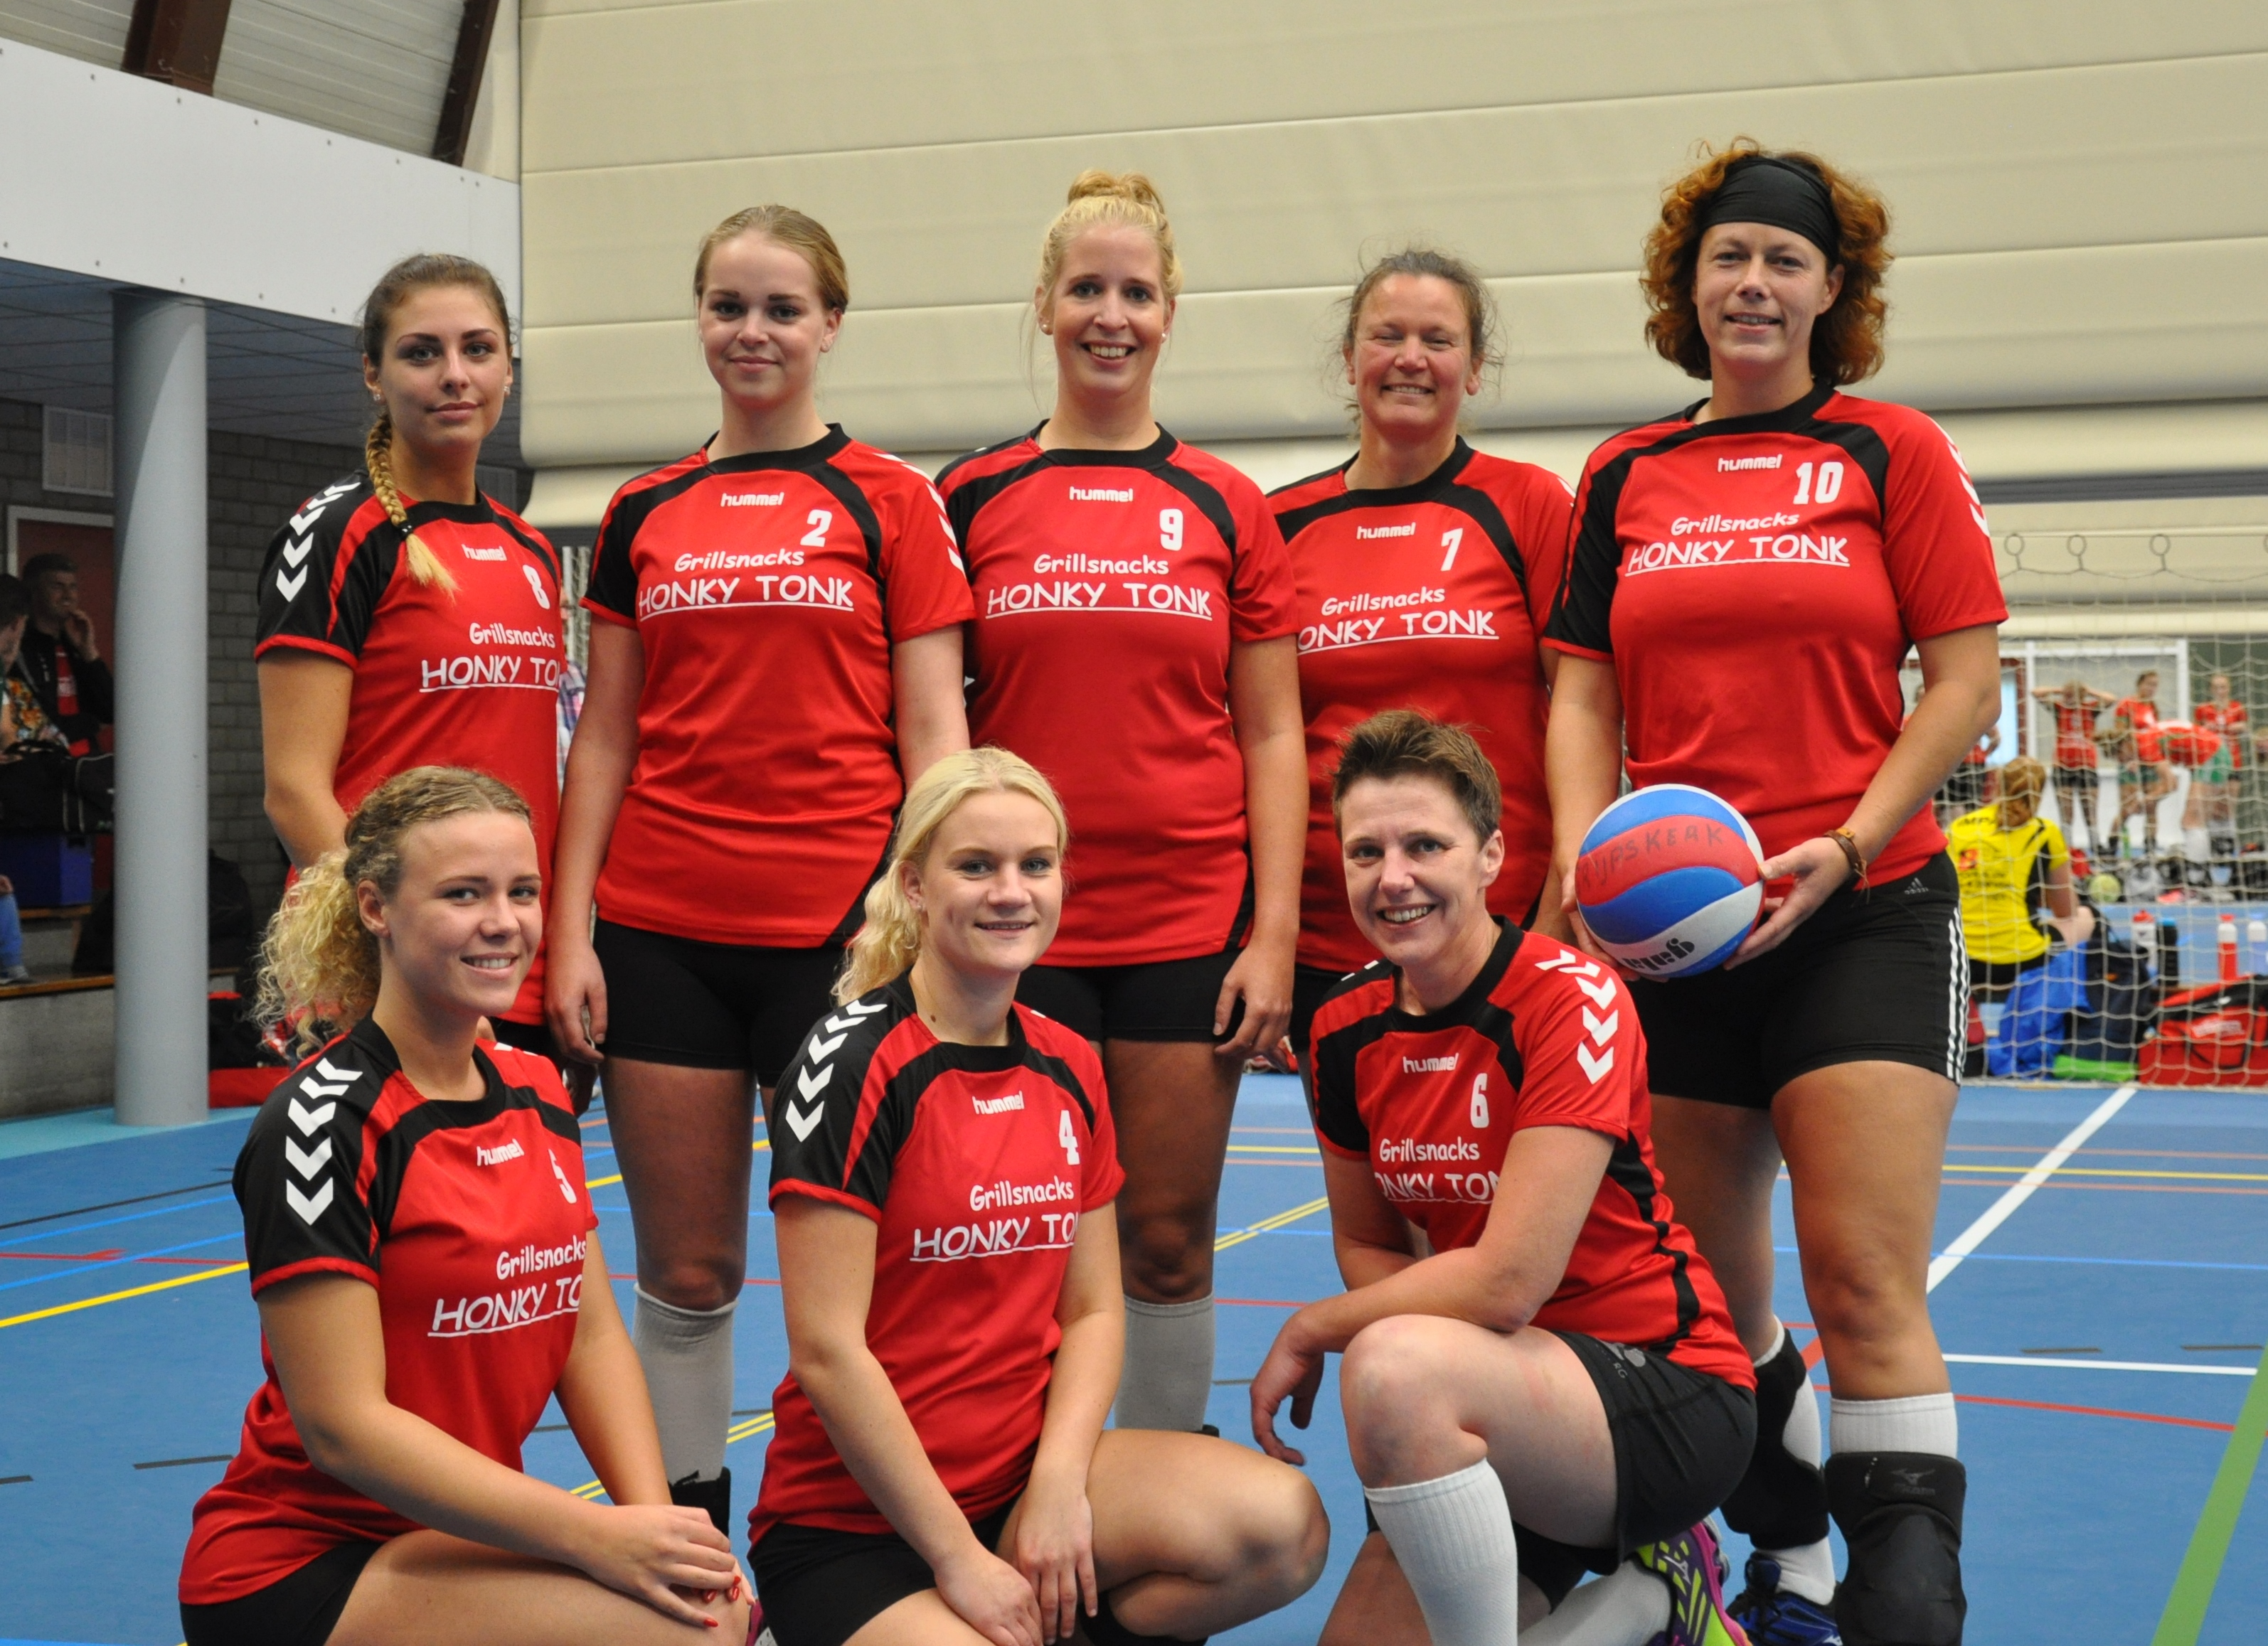 teamfoto dames 3